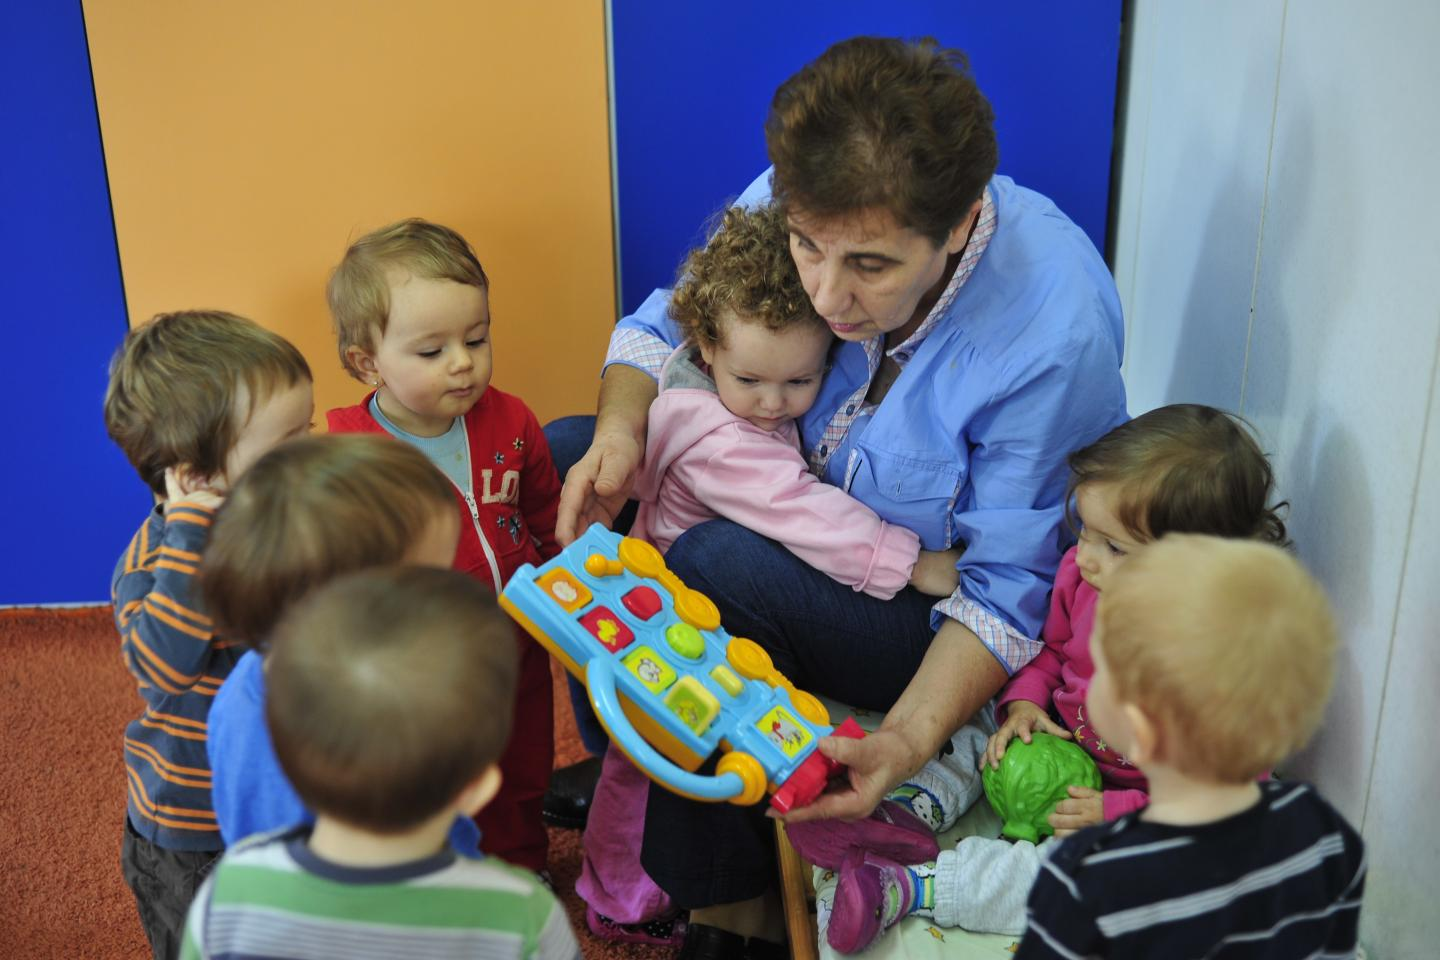 a kindergarten teacher with a lot of children surrounding her, explaining how a learning toy functions